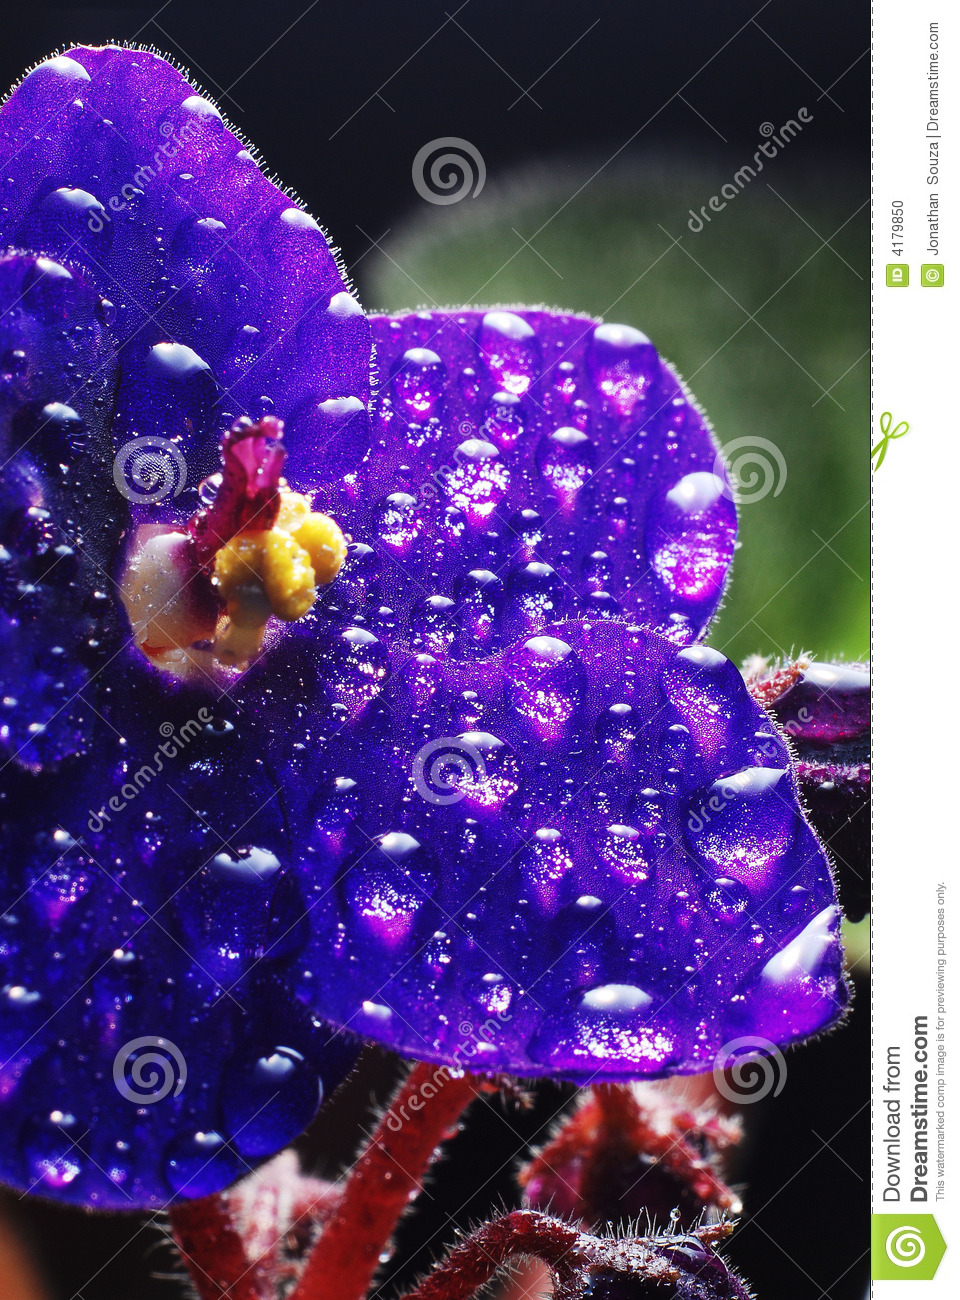 African Violet with droplets